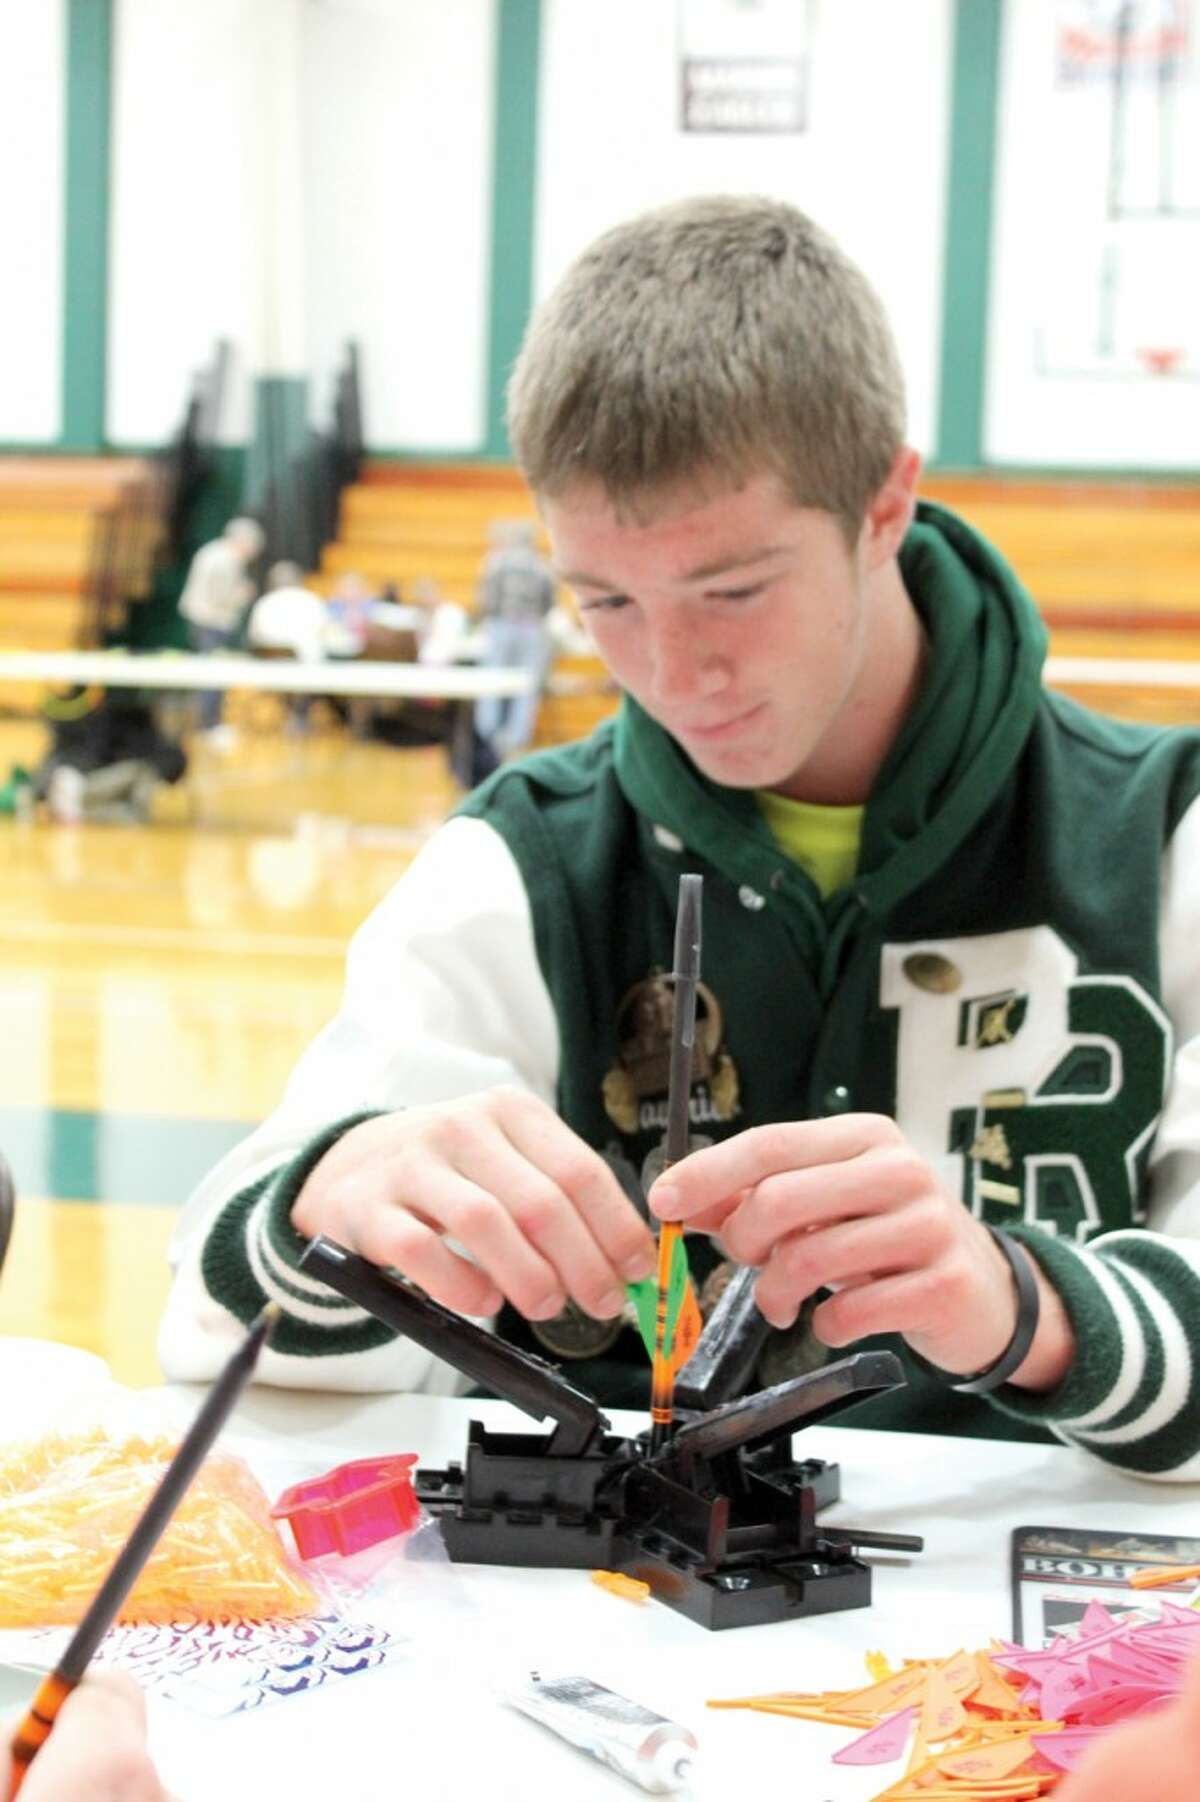 ARROW MAKING: Pine River High School senior Maverick Martin makes an arrow with a ball-point pen and feathers. Students put super glue on the arrows and pressed them together for 30 seconds. (Herald Review photo/Sarah Neubecker)